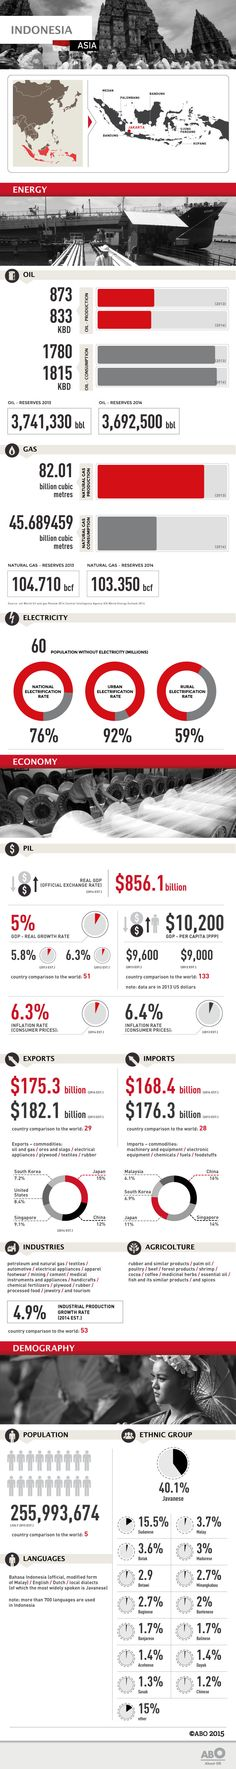 #Infographic: Facts and figures on the #energy, economy and demographics of #Indonesia